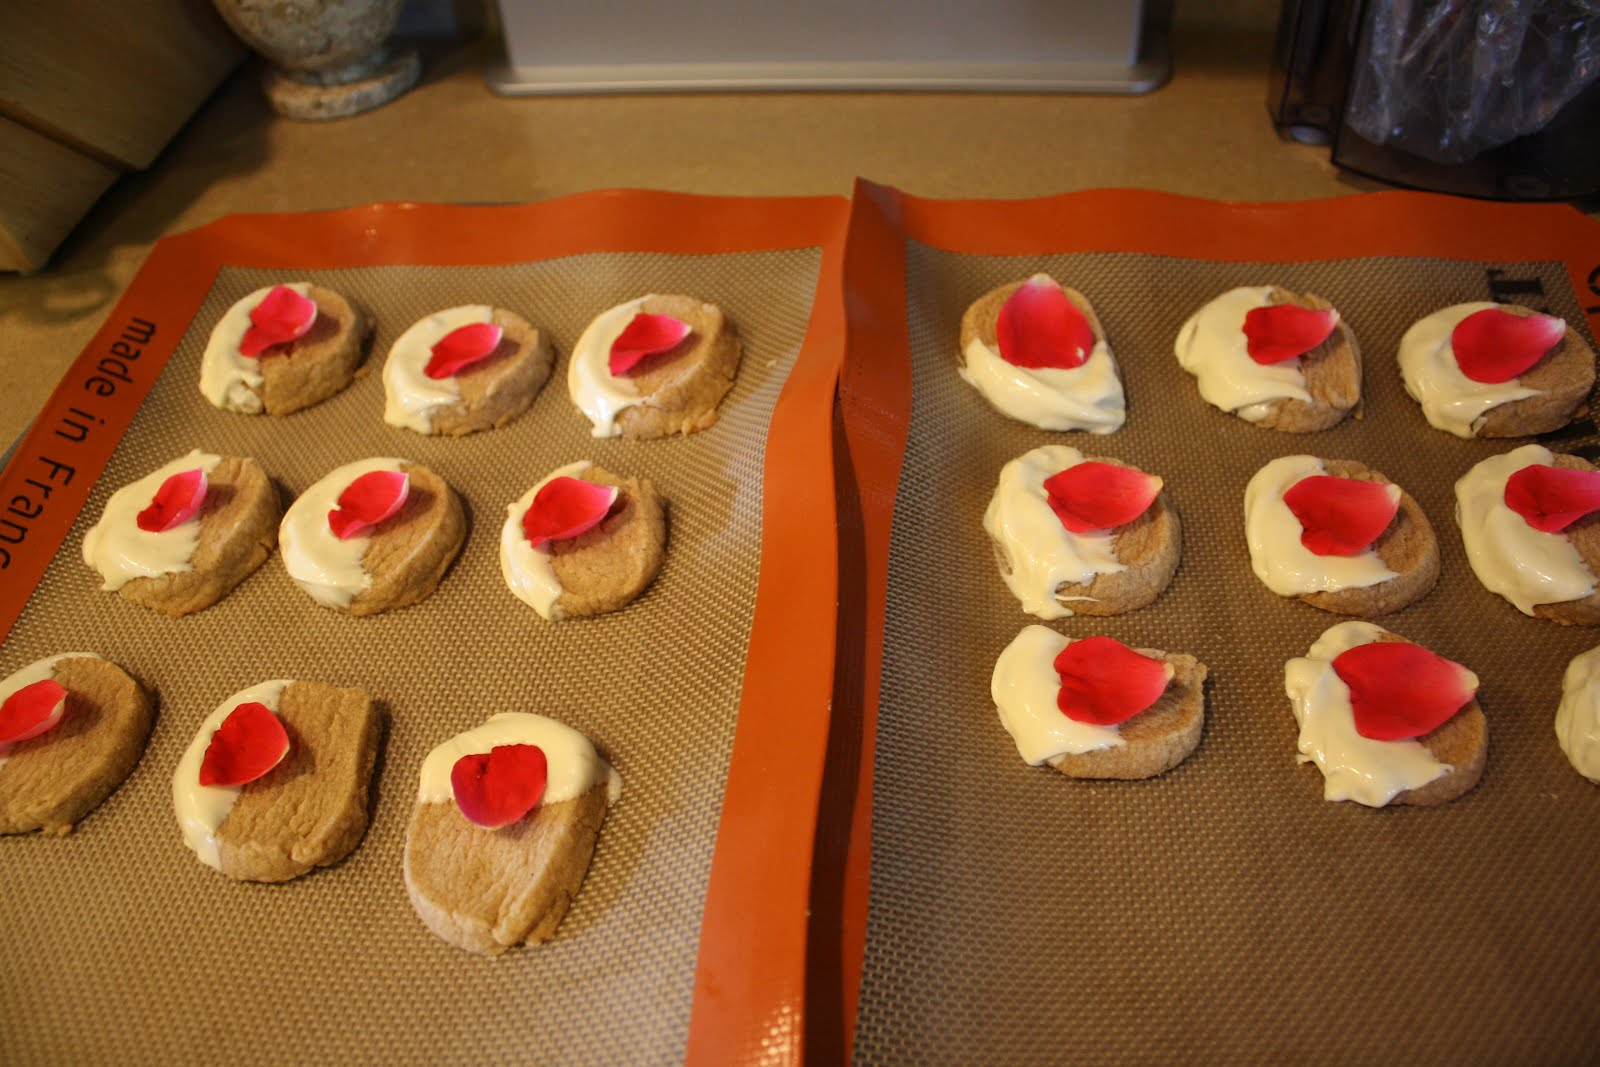 ... Cardamom-Vanilla Shortbread Cookies with White Chocolate and Rose